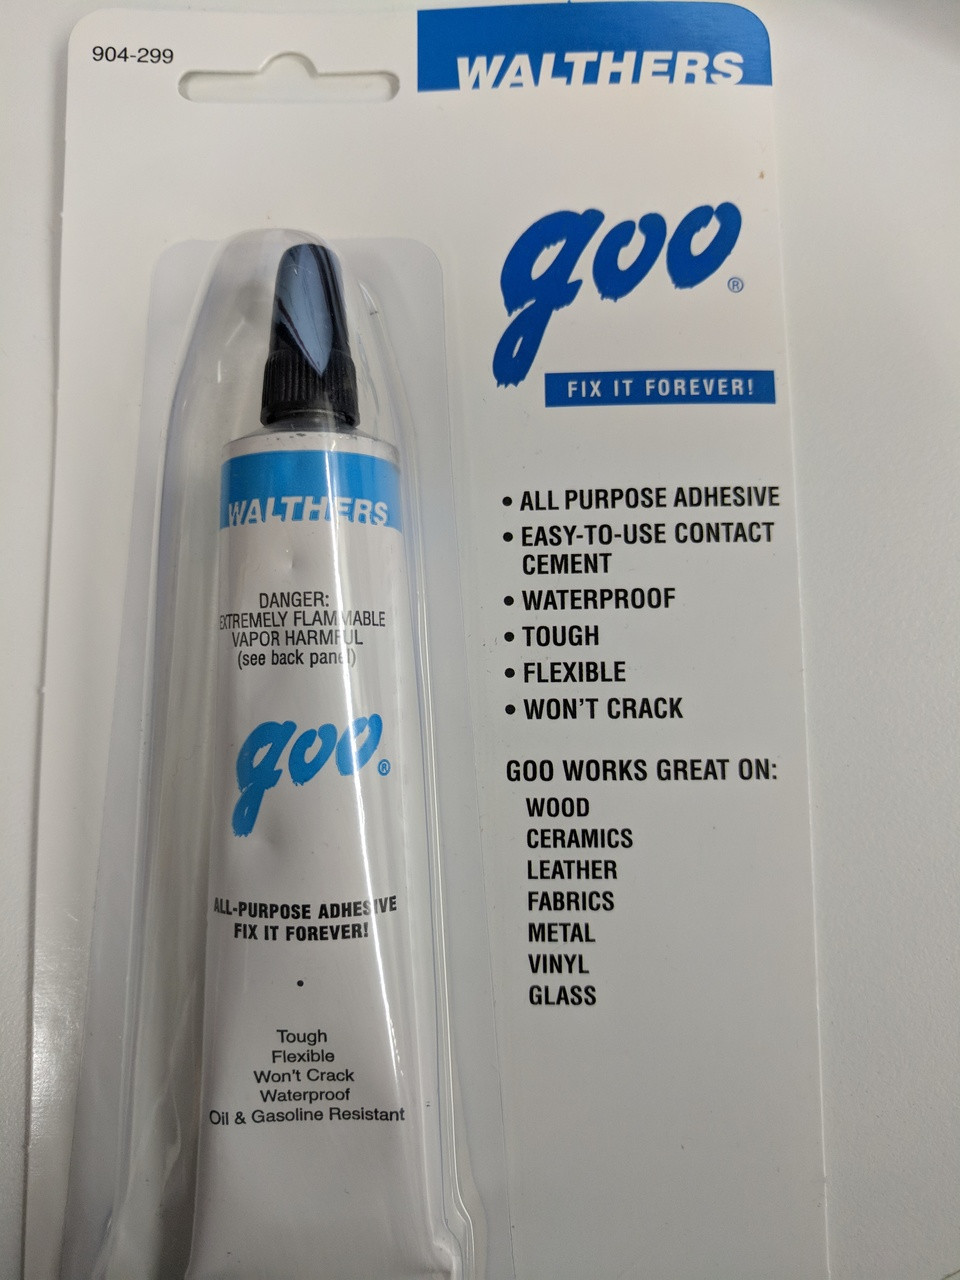 299 (ALL Scales) WAL-9904-299         Goo  ALL Scales Part # - 904-299